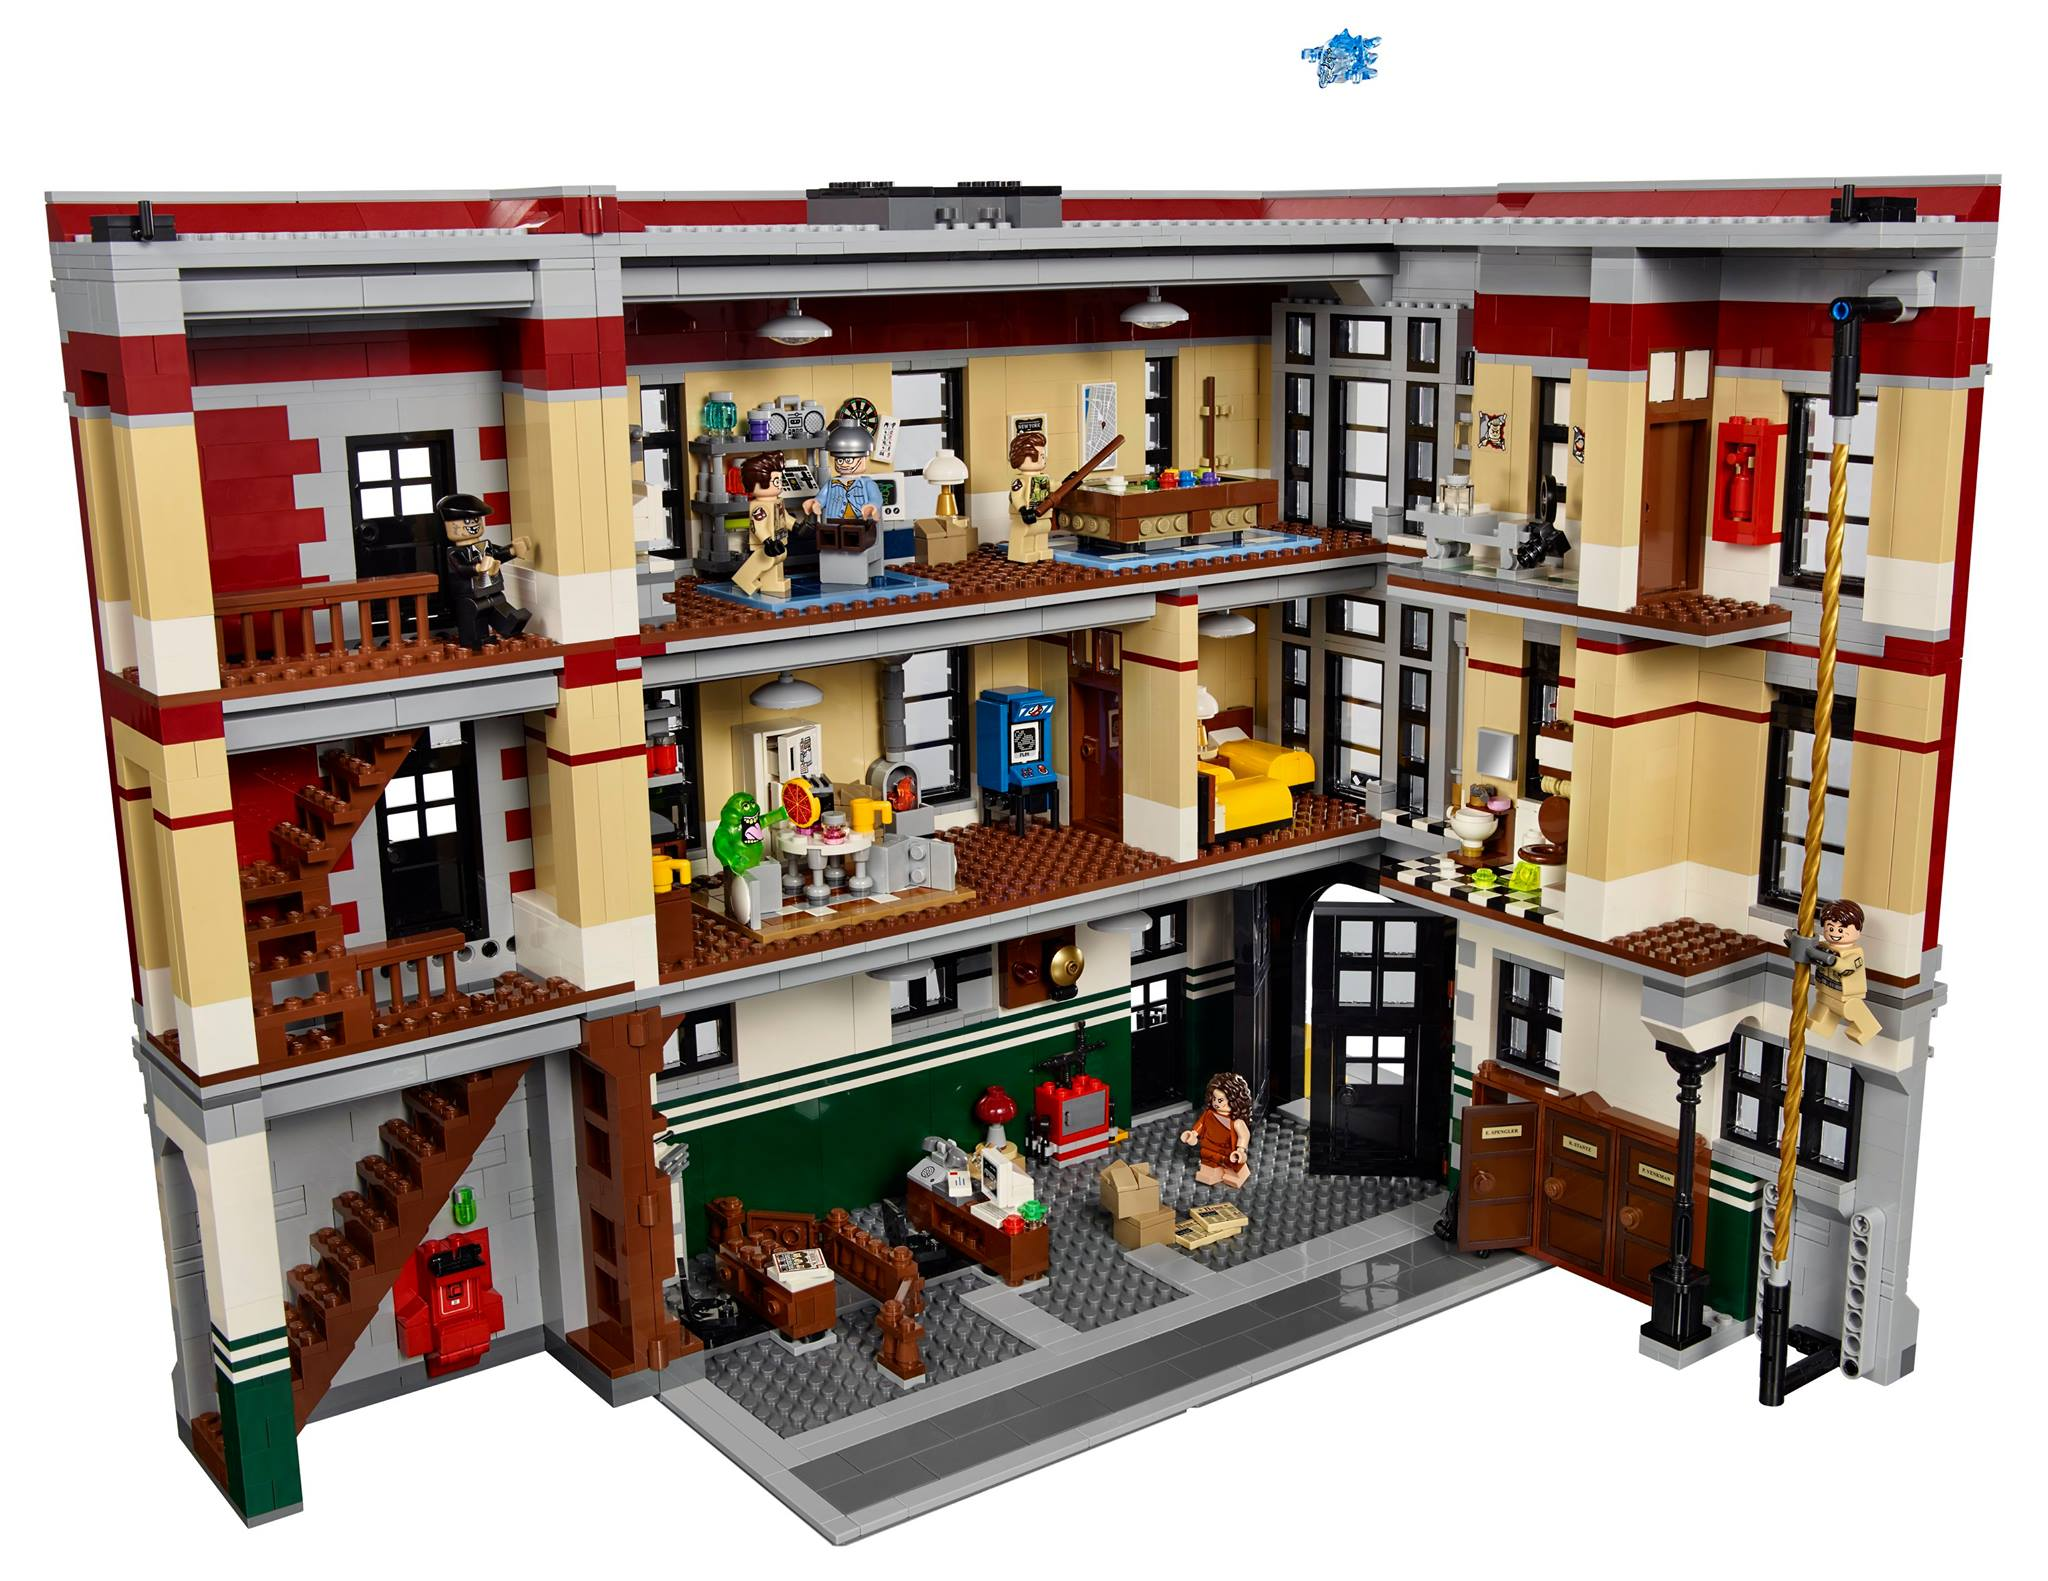 minifig pictures news latest set news and happenings